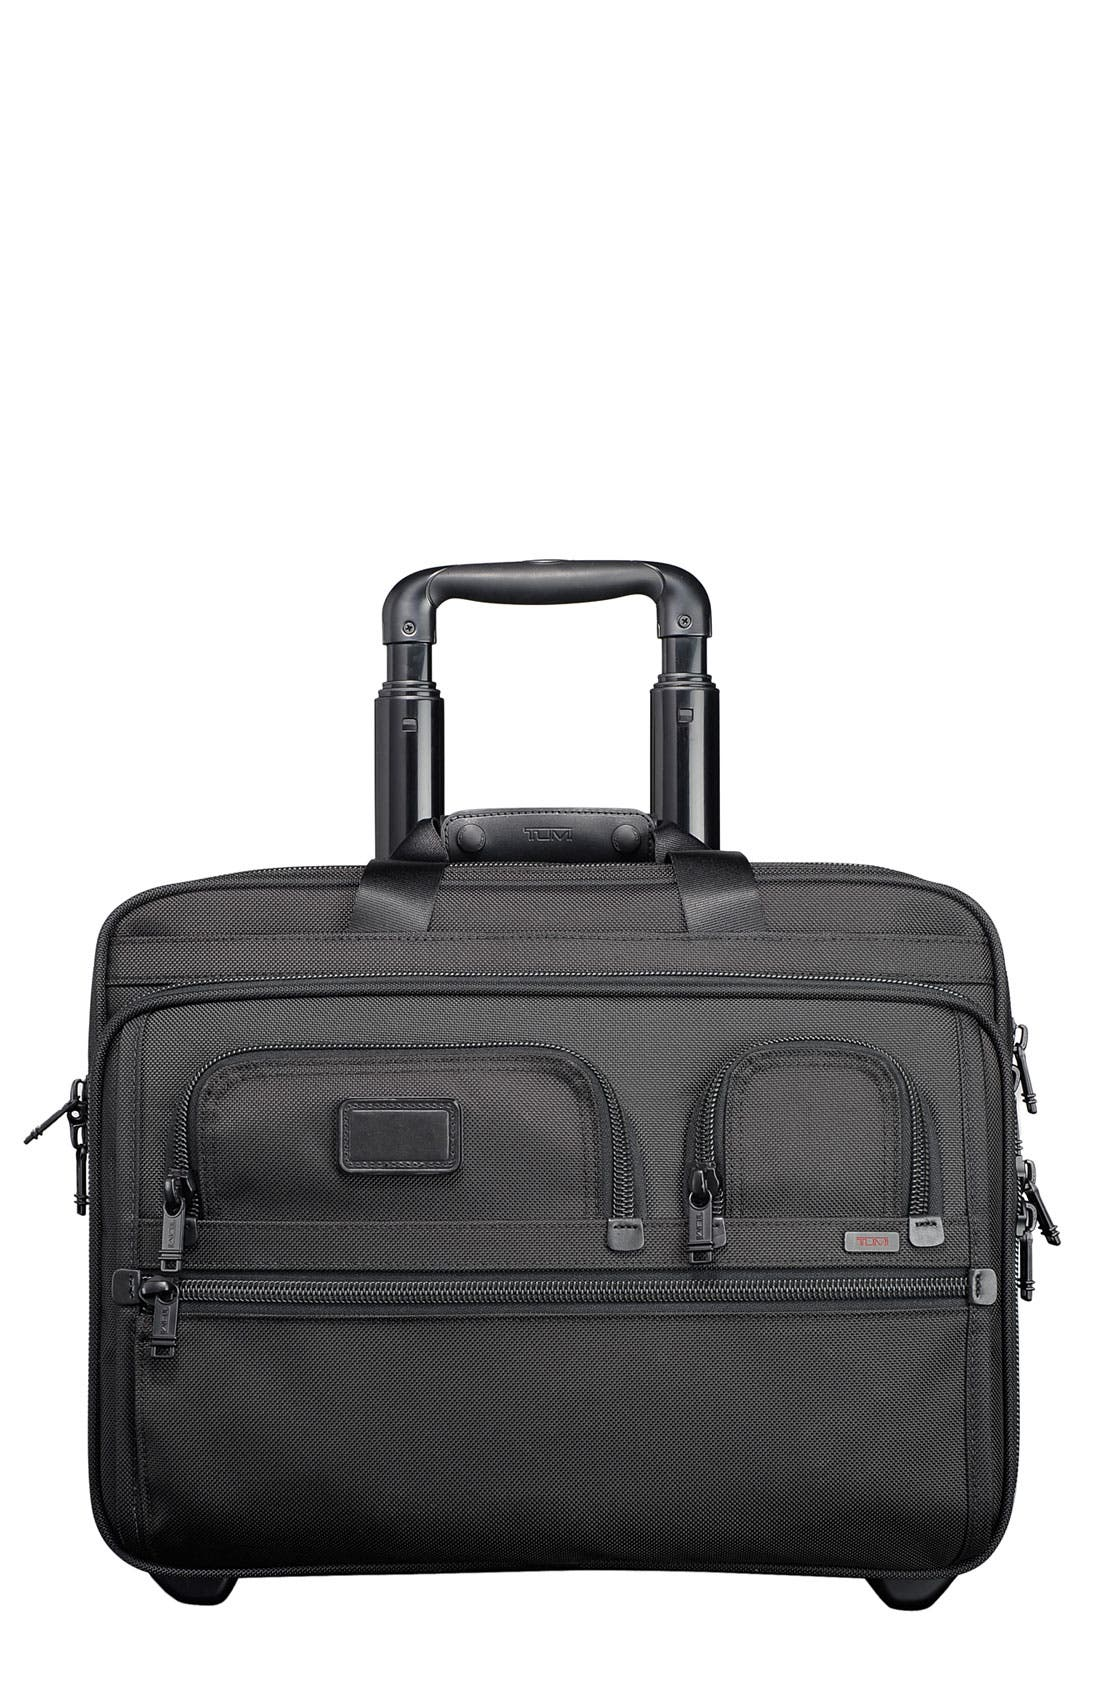 Alternate Image 1 Selected - Tumi 'Alpha' Deluxe Wheeled Briefcase with Laptop Case